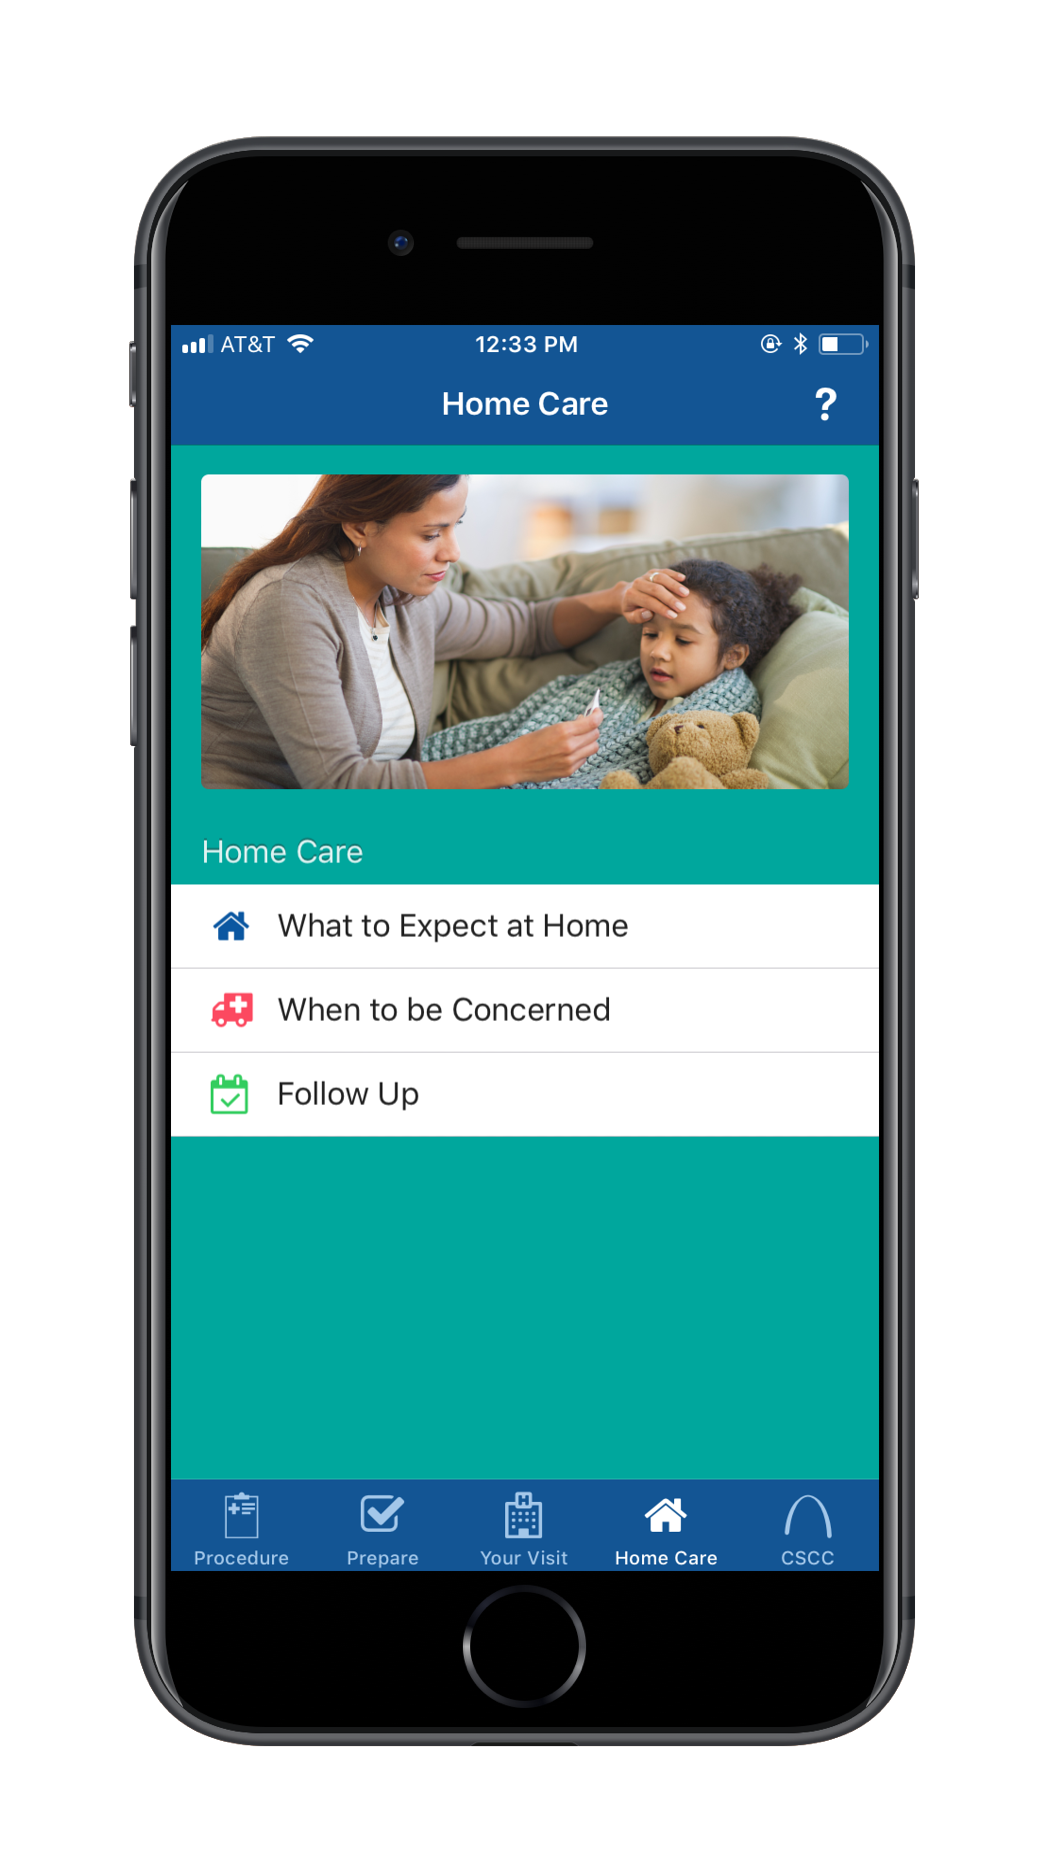 Screen cap of the Surgery Partner surgery app with home care advice and information for patients